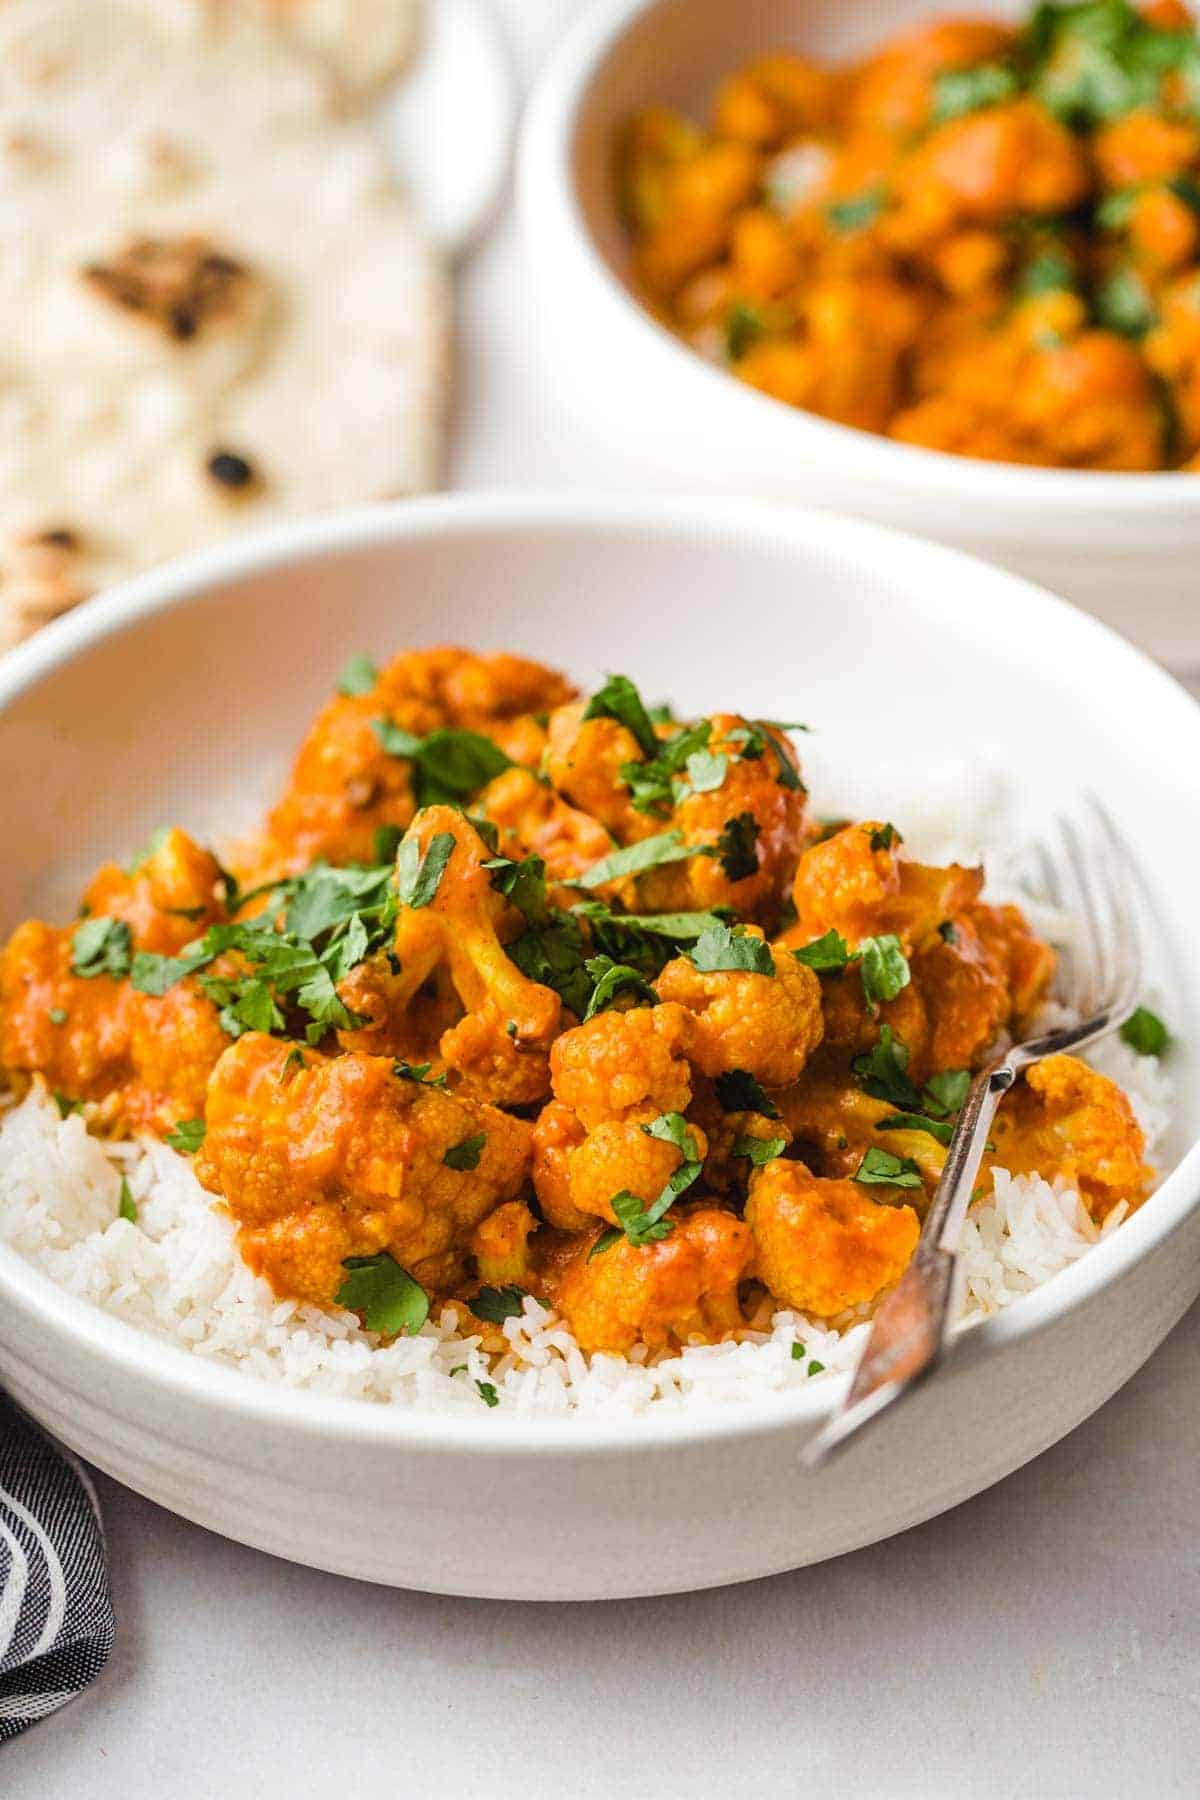 Serving butter cauliflower over basmati rice in white bowls